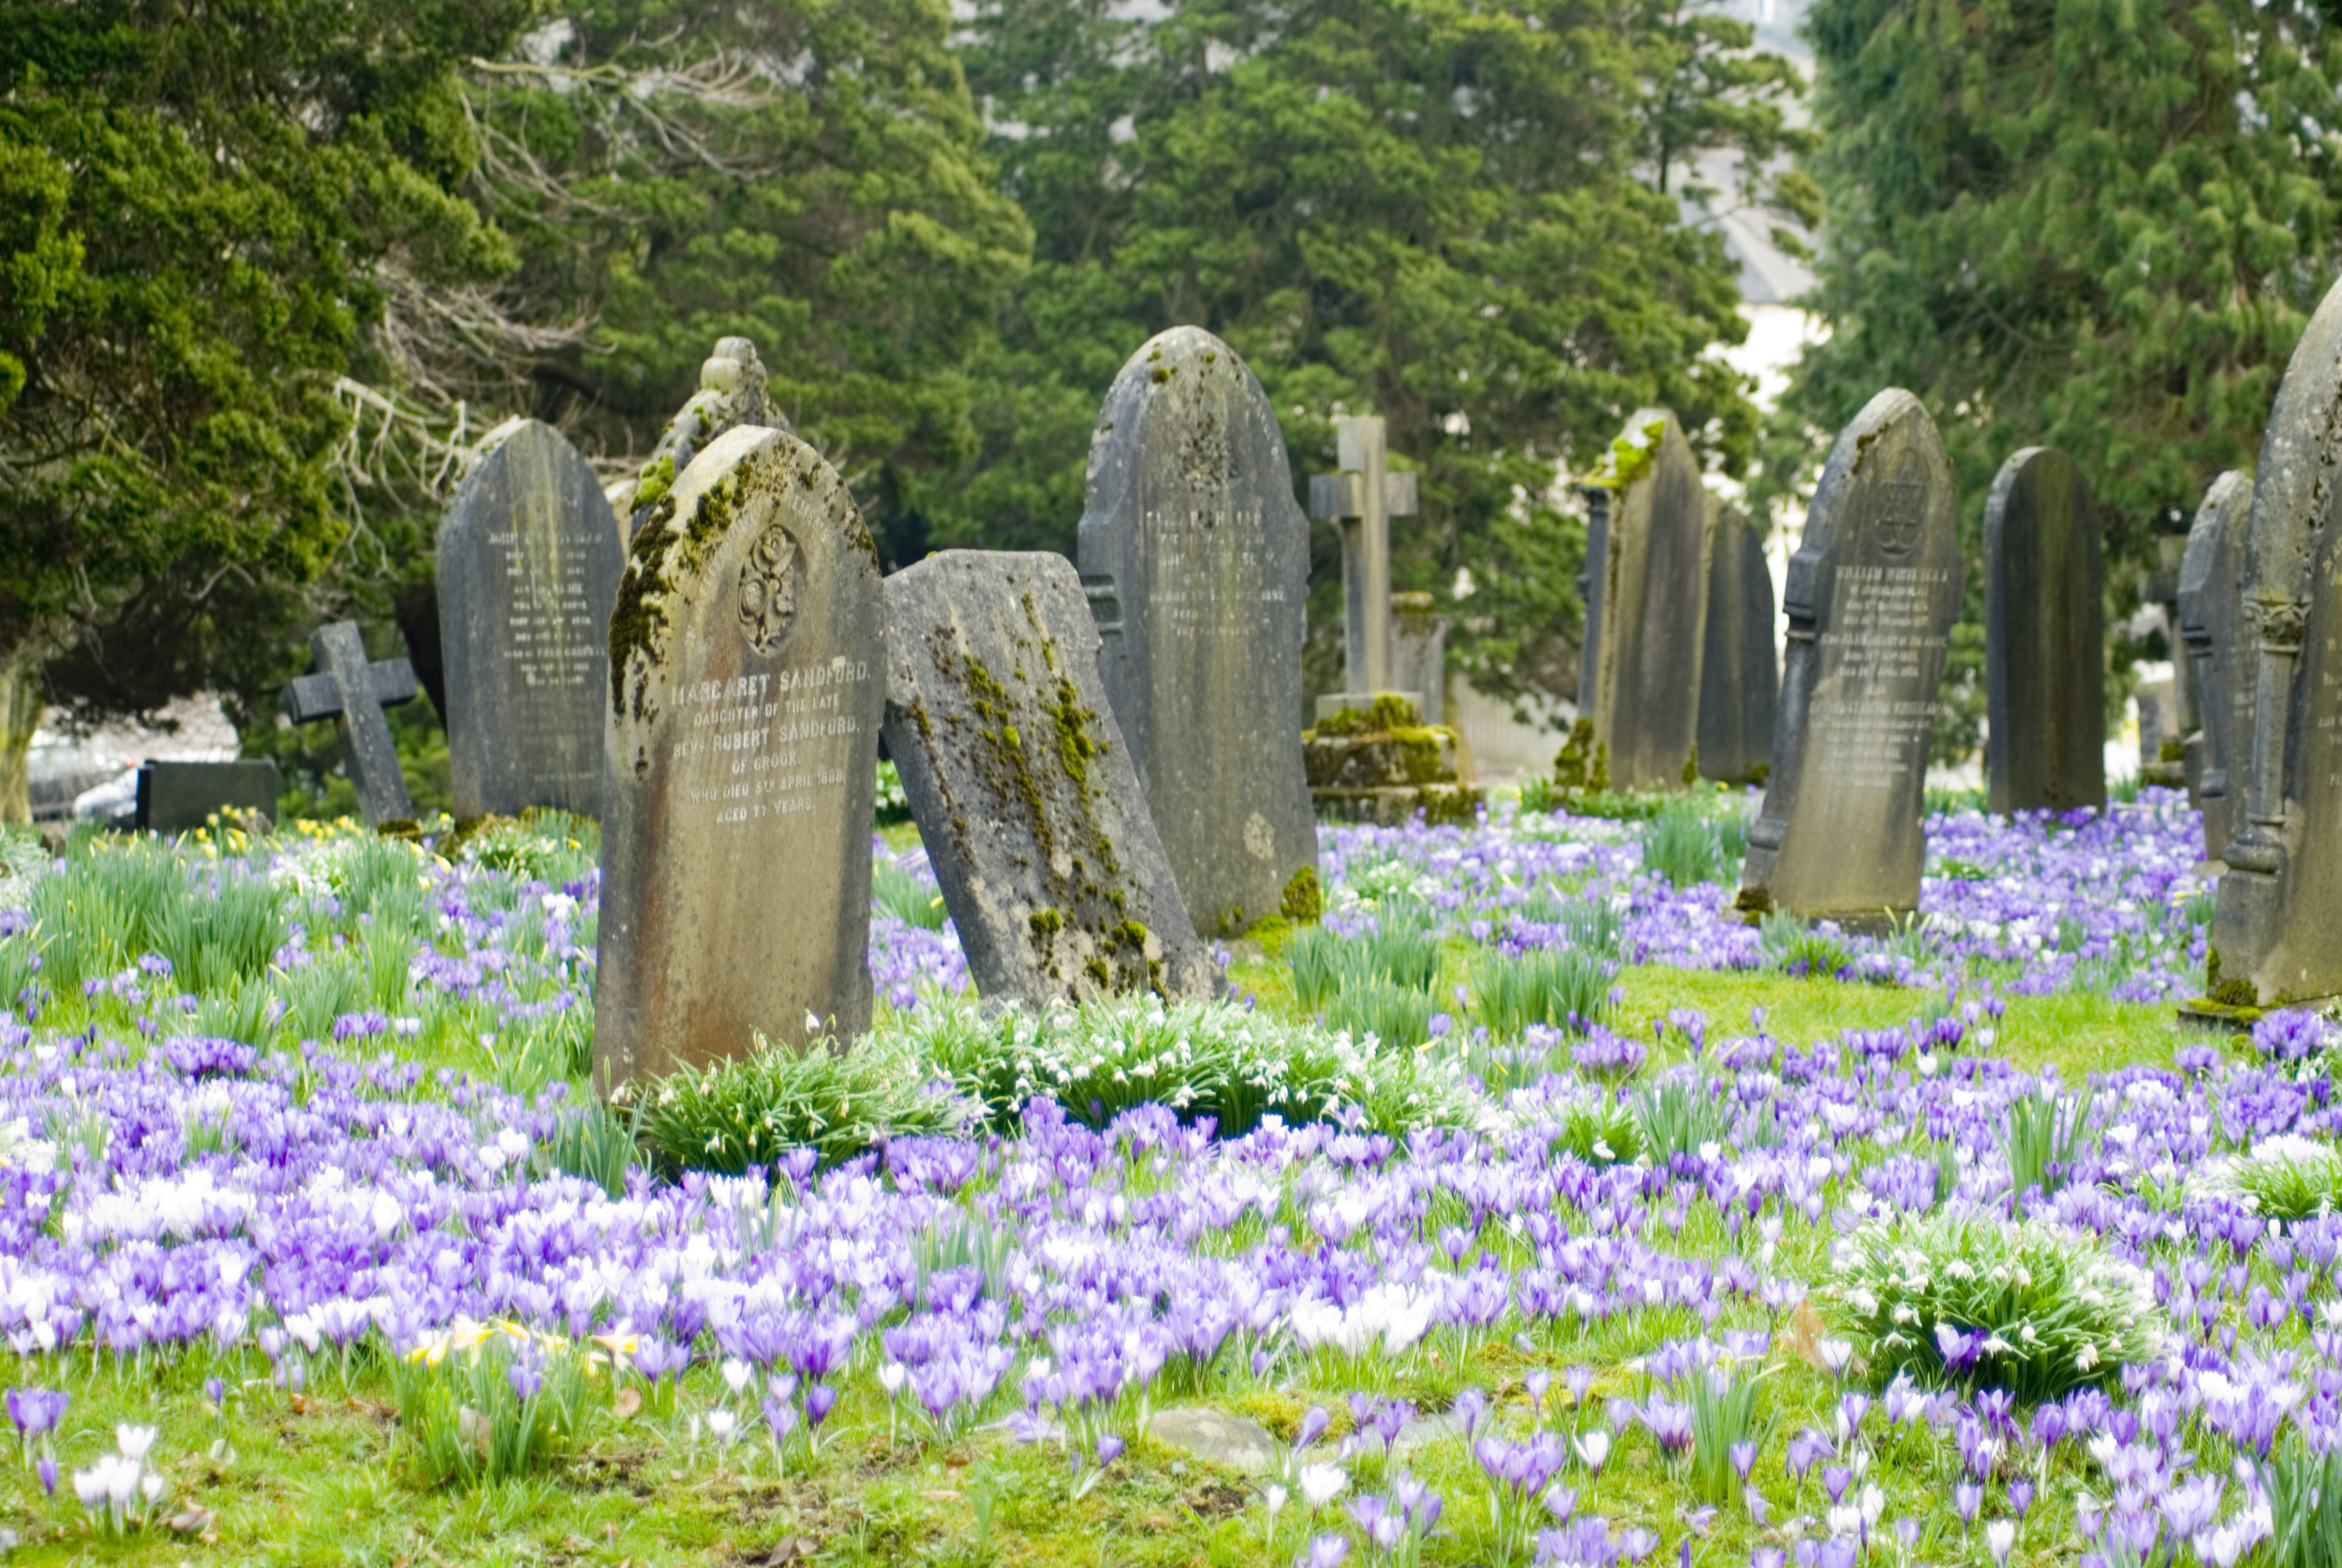 spring_time_churchyard.jpg - Old gravestones in a rural springtime churchyard with colourful crocuses blooming between the graves